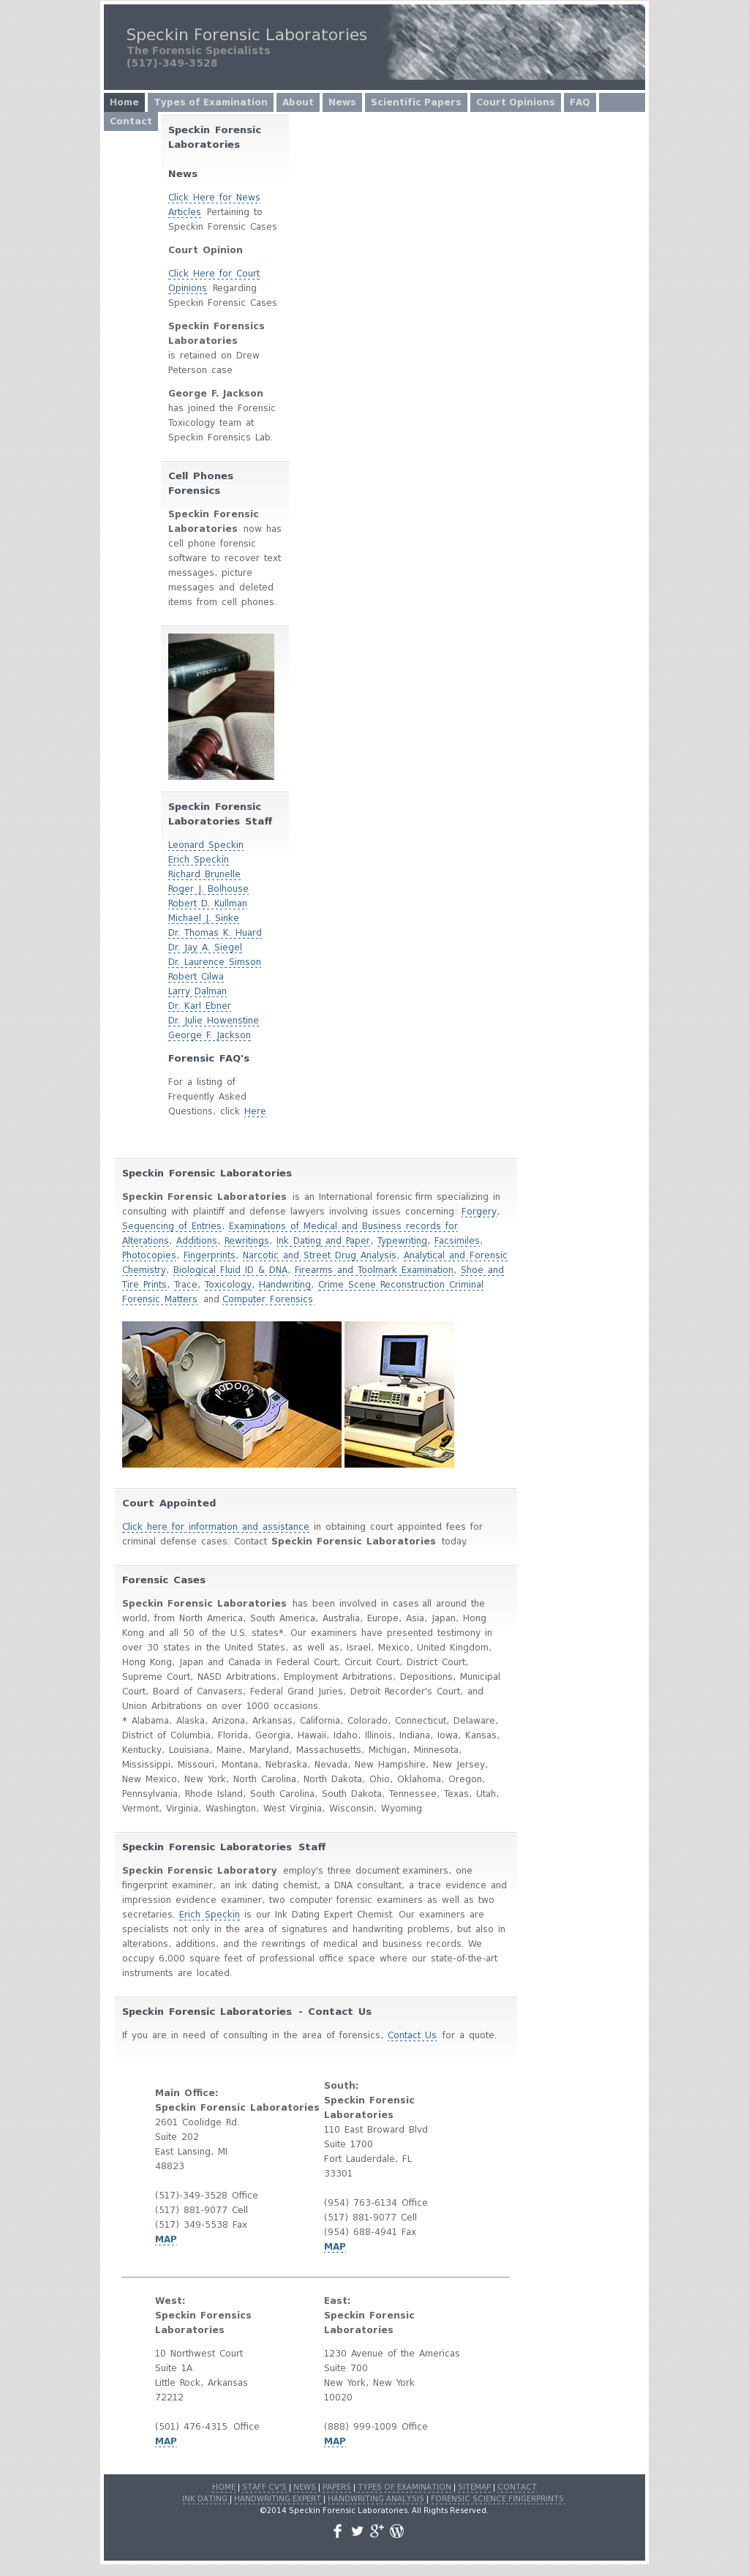 Speckin Forensic Laboratories Competitors, Revenue and